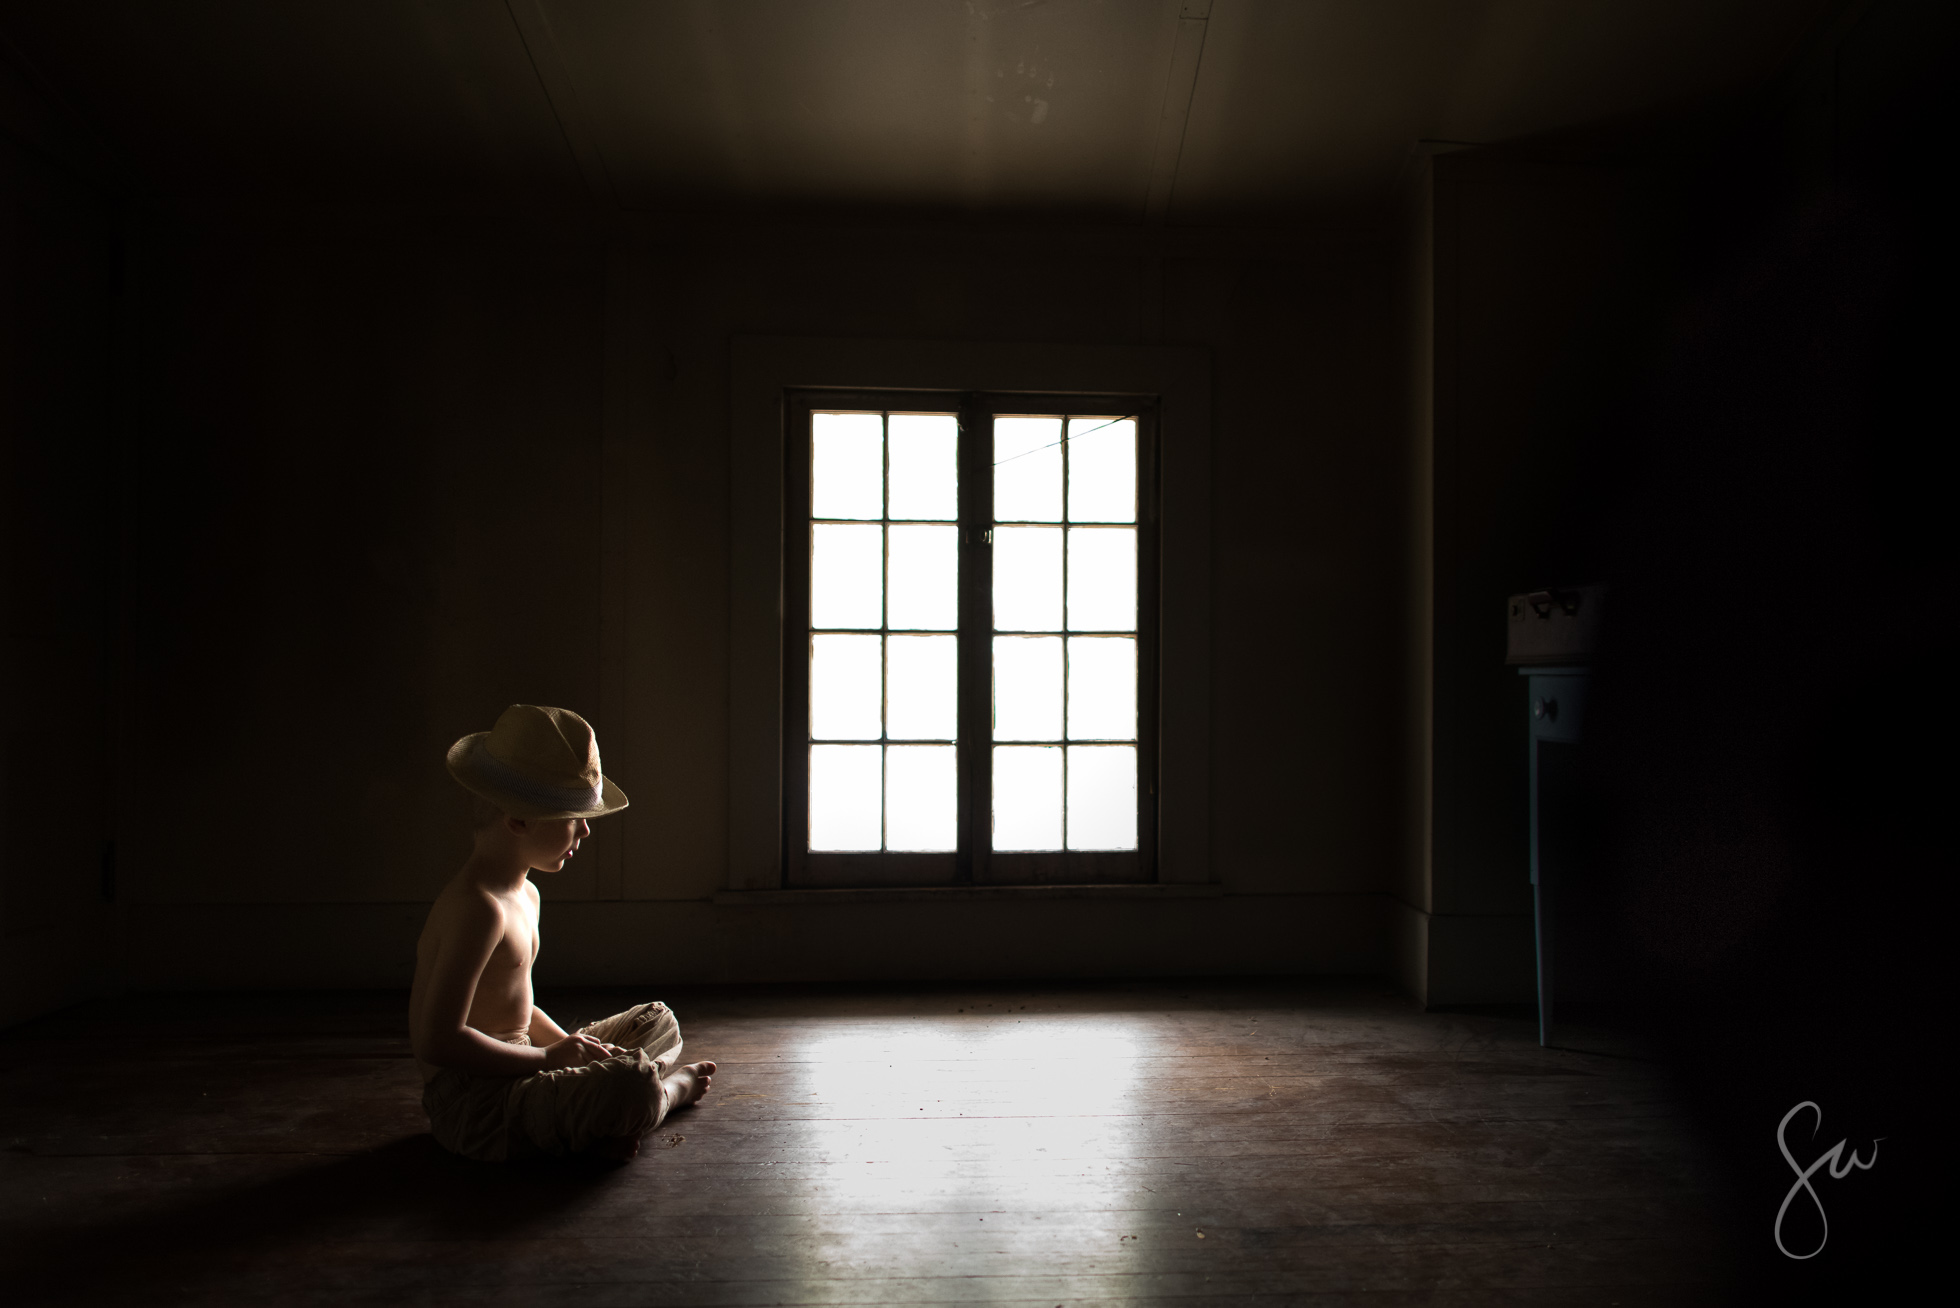 Little-Boy-Wearing-Hat-Sitting-in-Creepy-Low-Light-Attic-by-Photographer-Sarah-Wilkerson-1089